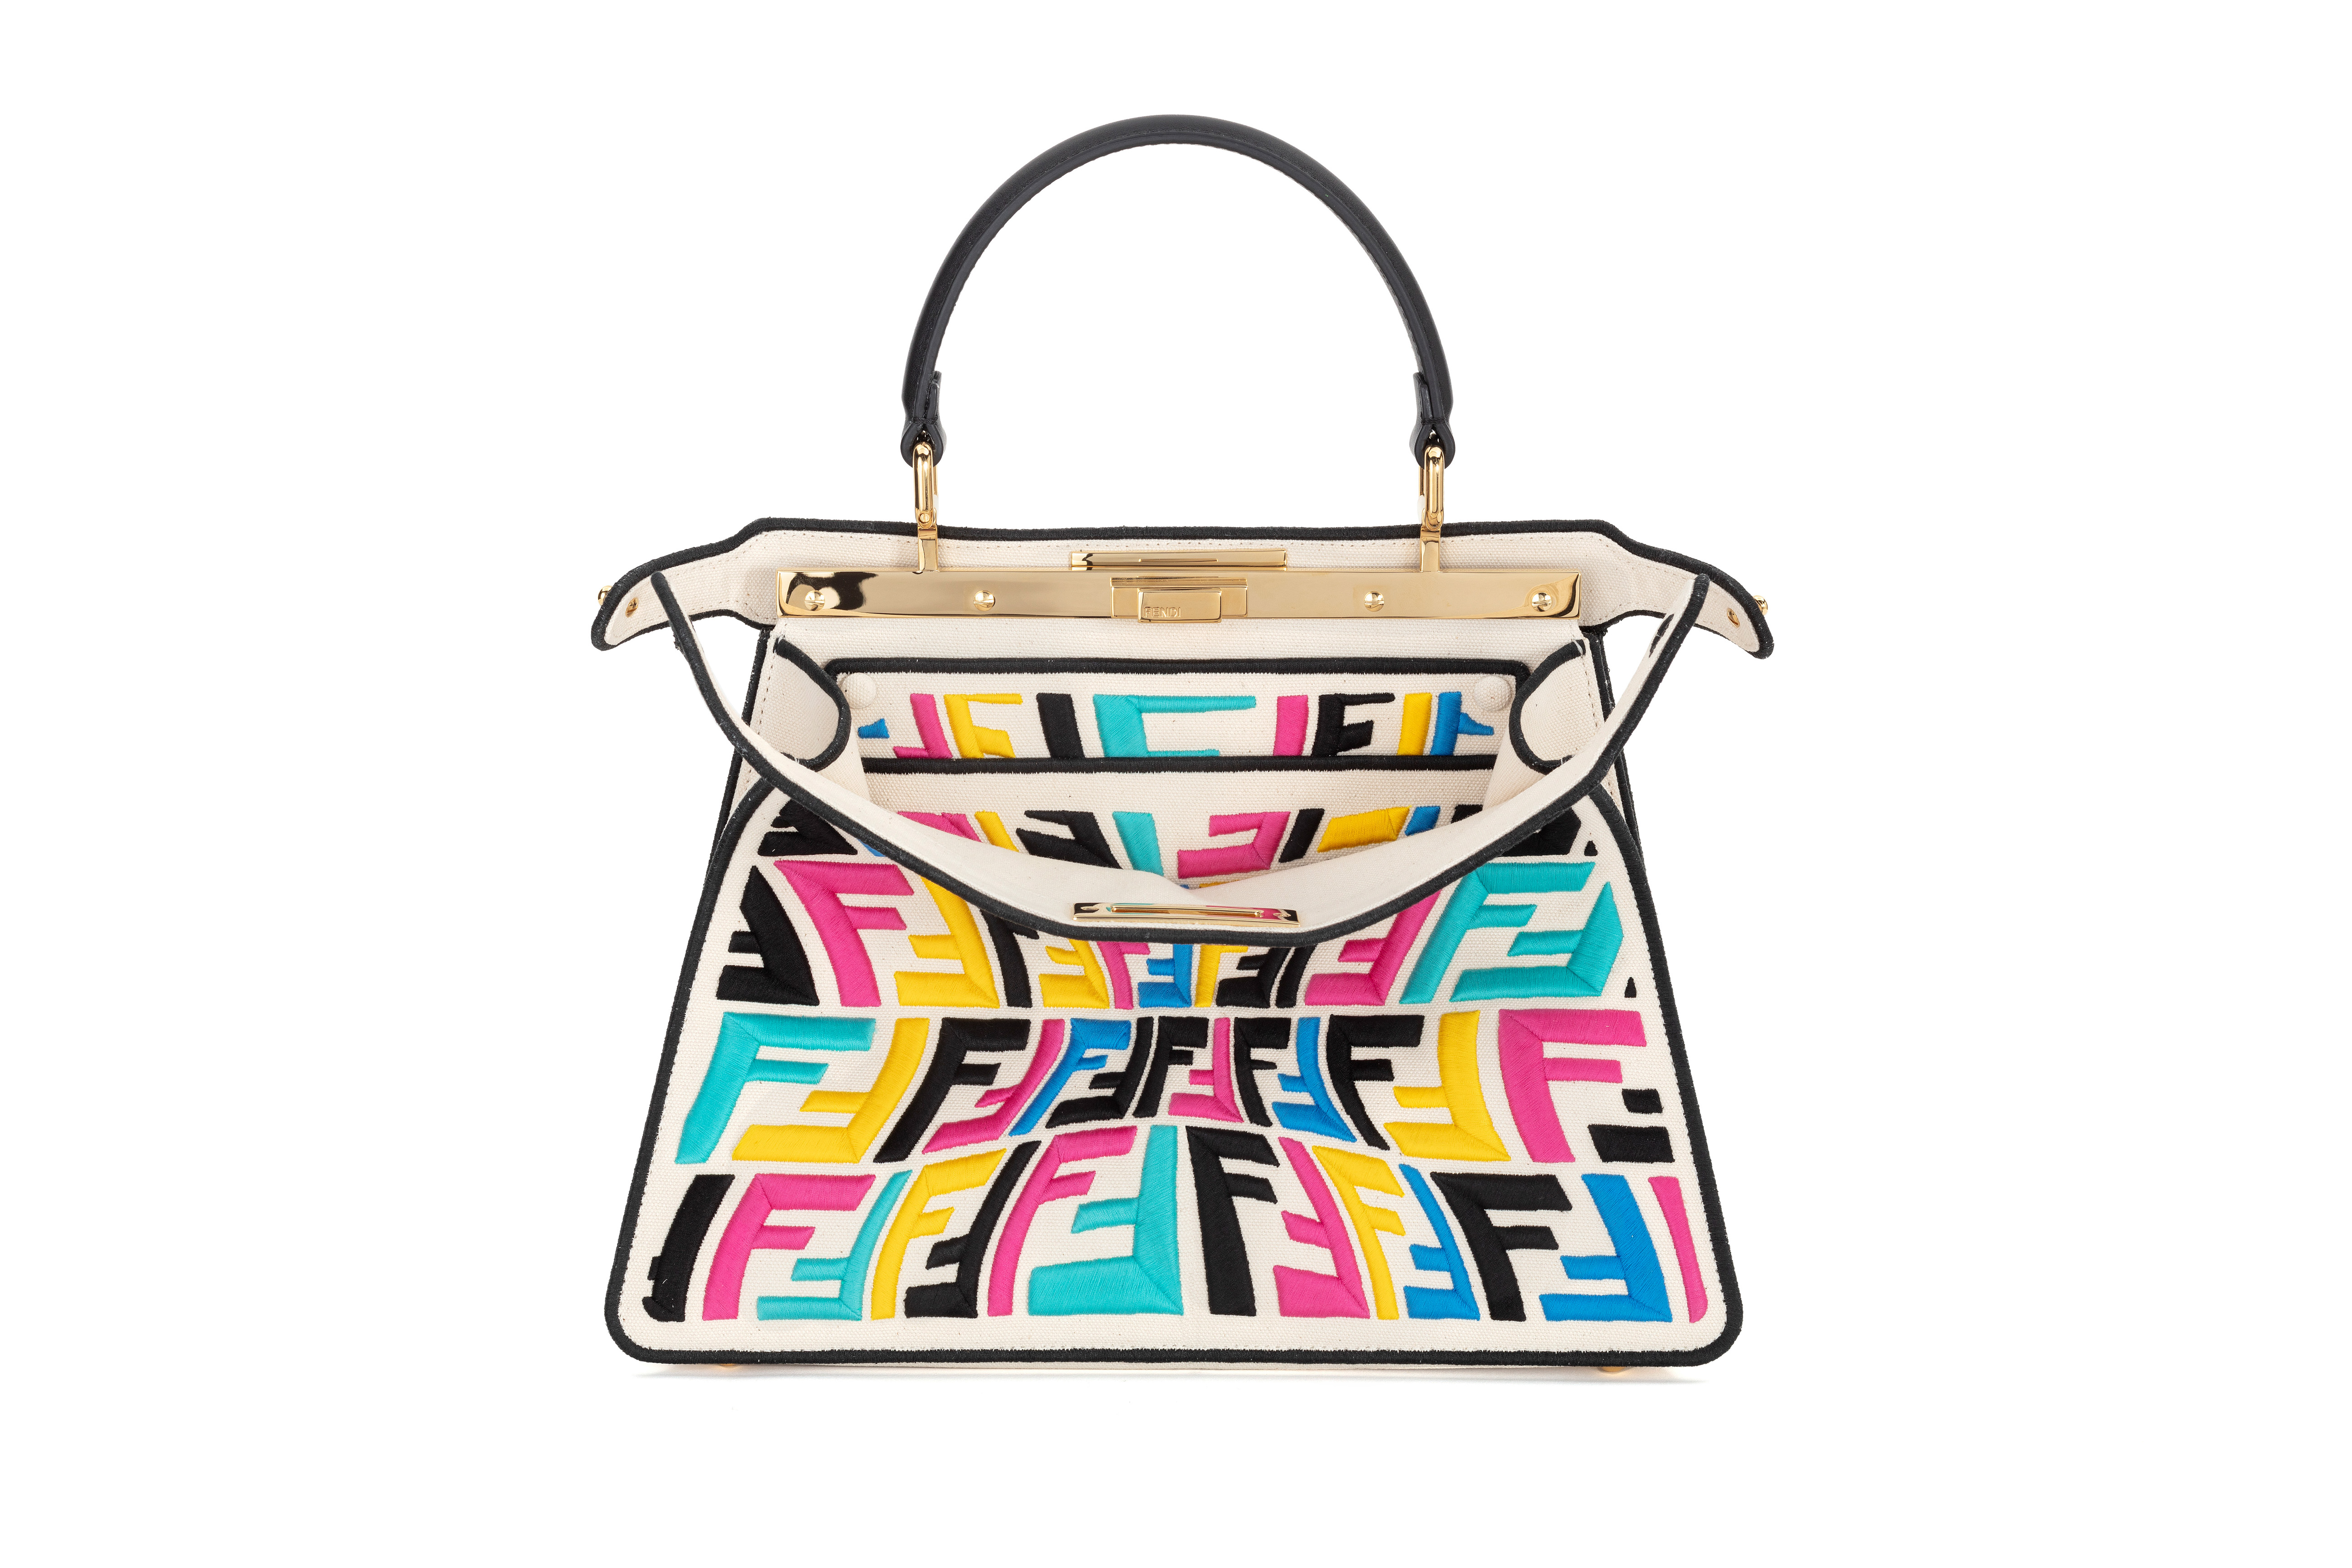 Fendi limited edition Peekaboo bag by Sarah Coleman